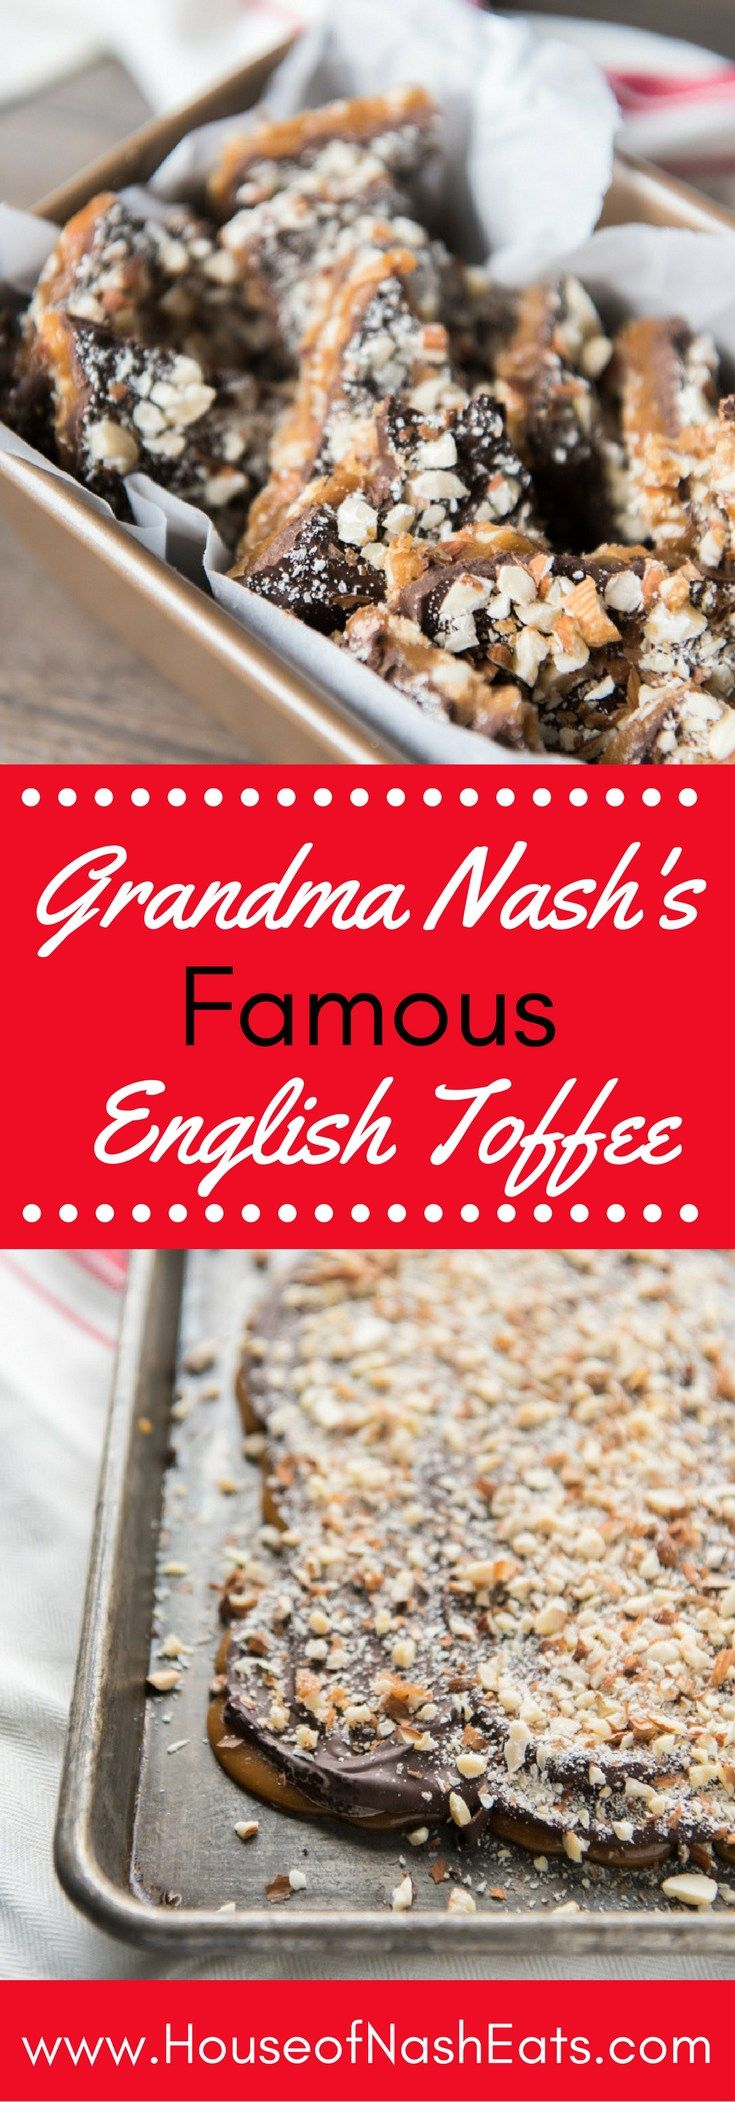 Grandma Nash's Best Butter Almond English Toffee is one to be handed down through generations. The crunchy, buttery toffee and toasted almonds with a thick layer of chocolate makes this one of our favorite candies and a Christmas tradition that we love to share with friends & neighbors!